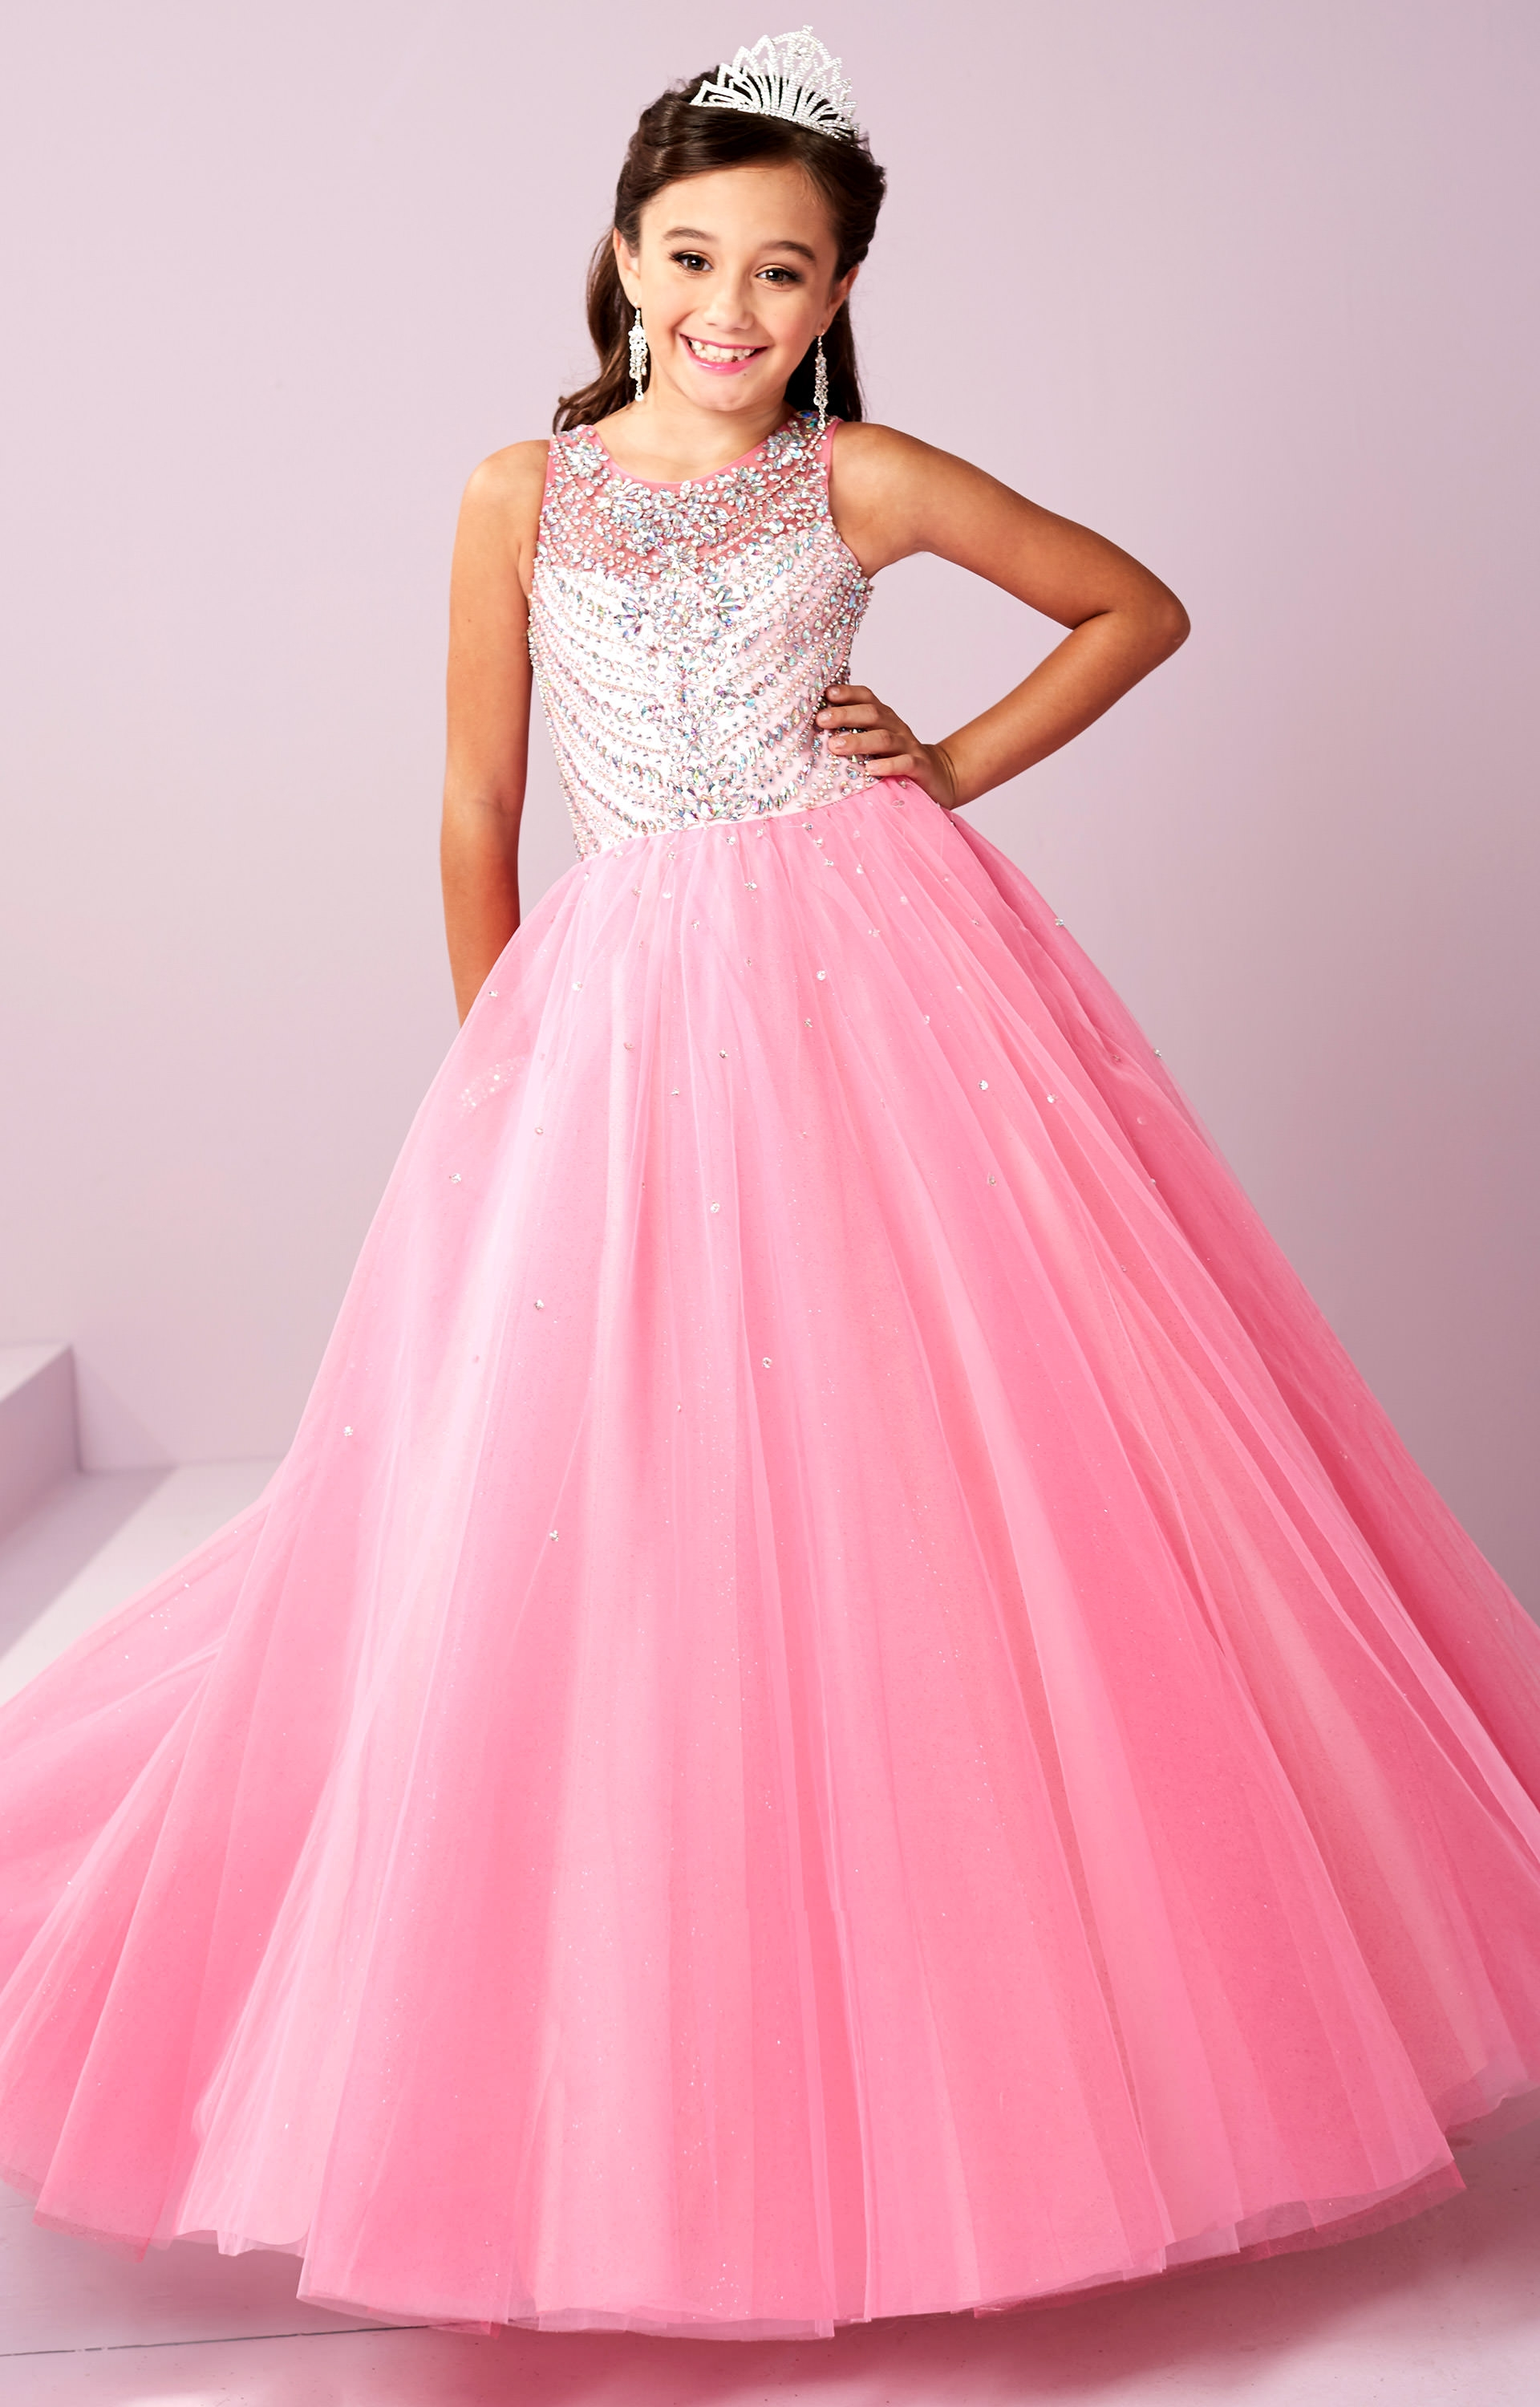 Tiffany Princess 13484 Beaded Sparkle Gown Prom Dress